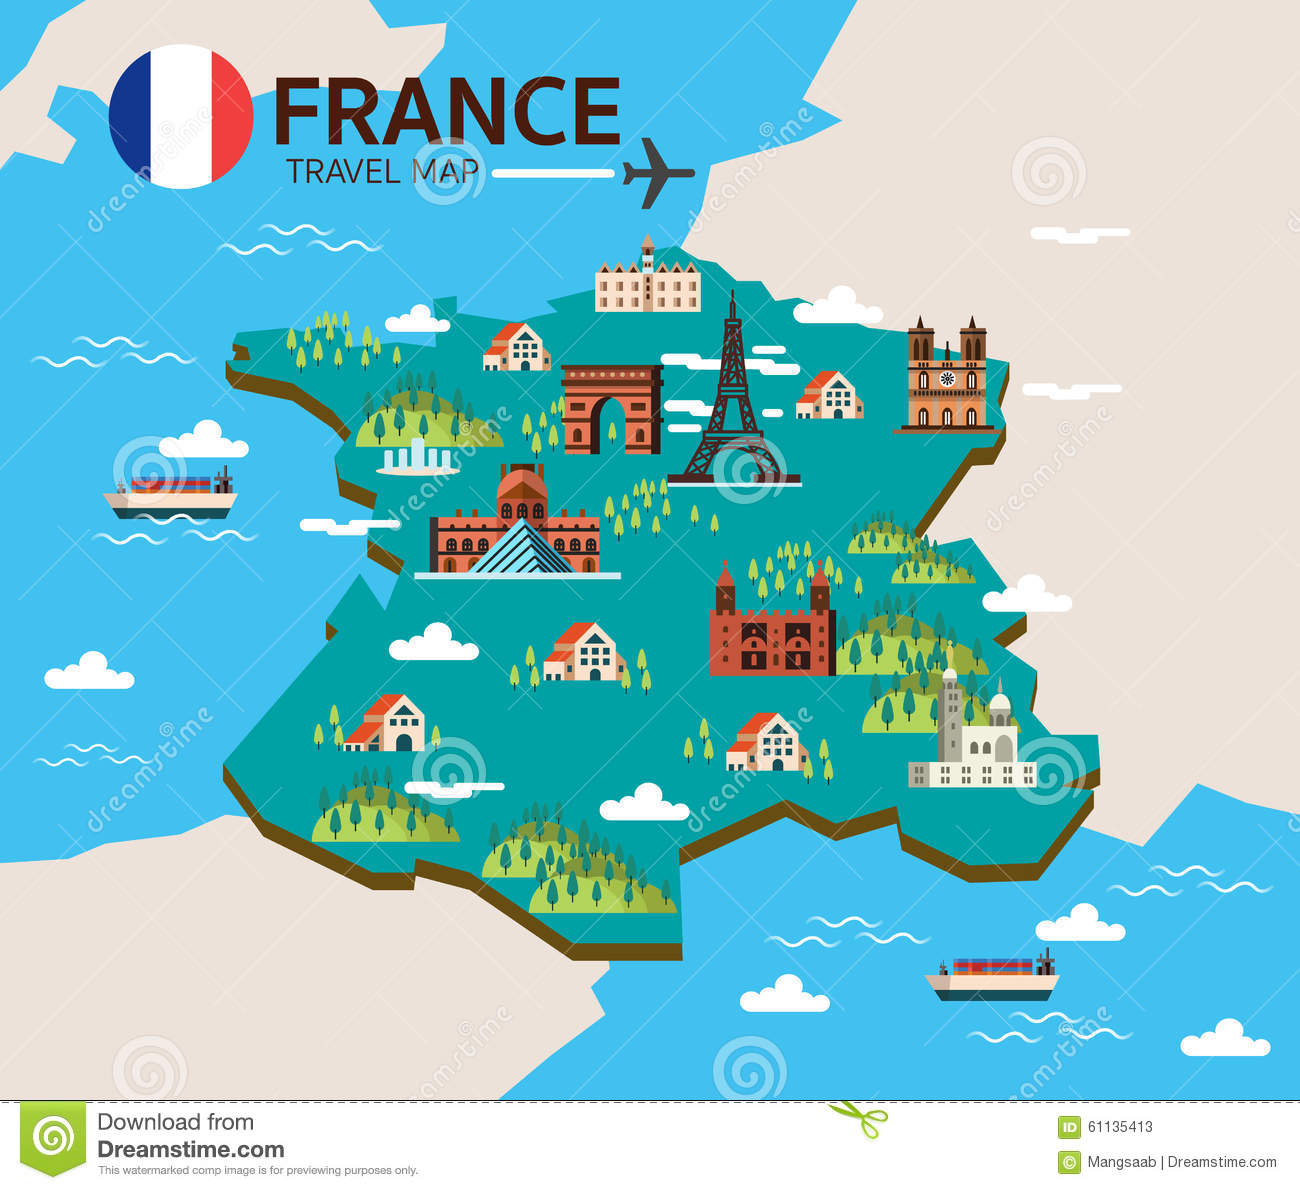 Travel Map Of France.France Landmark And Travel Map Stock Vector Illustration Of